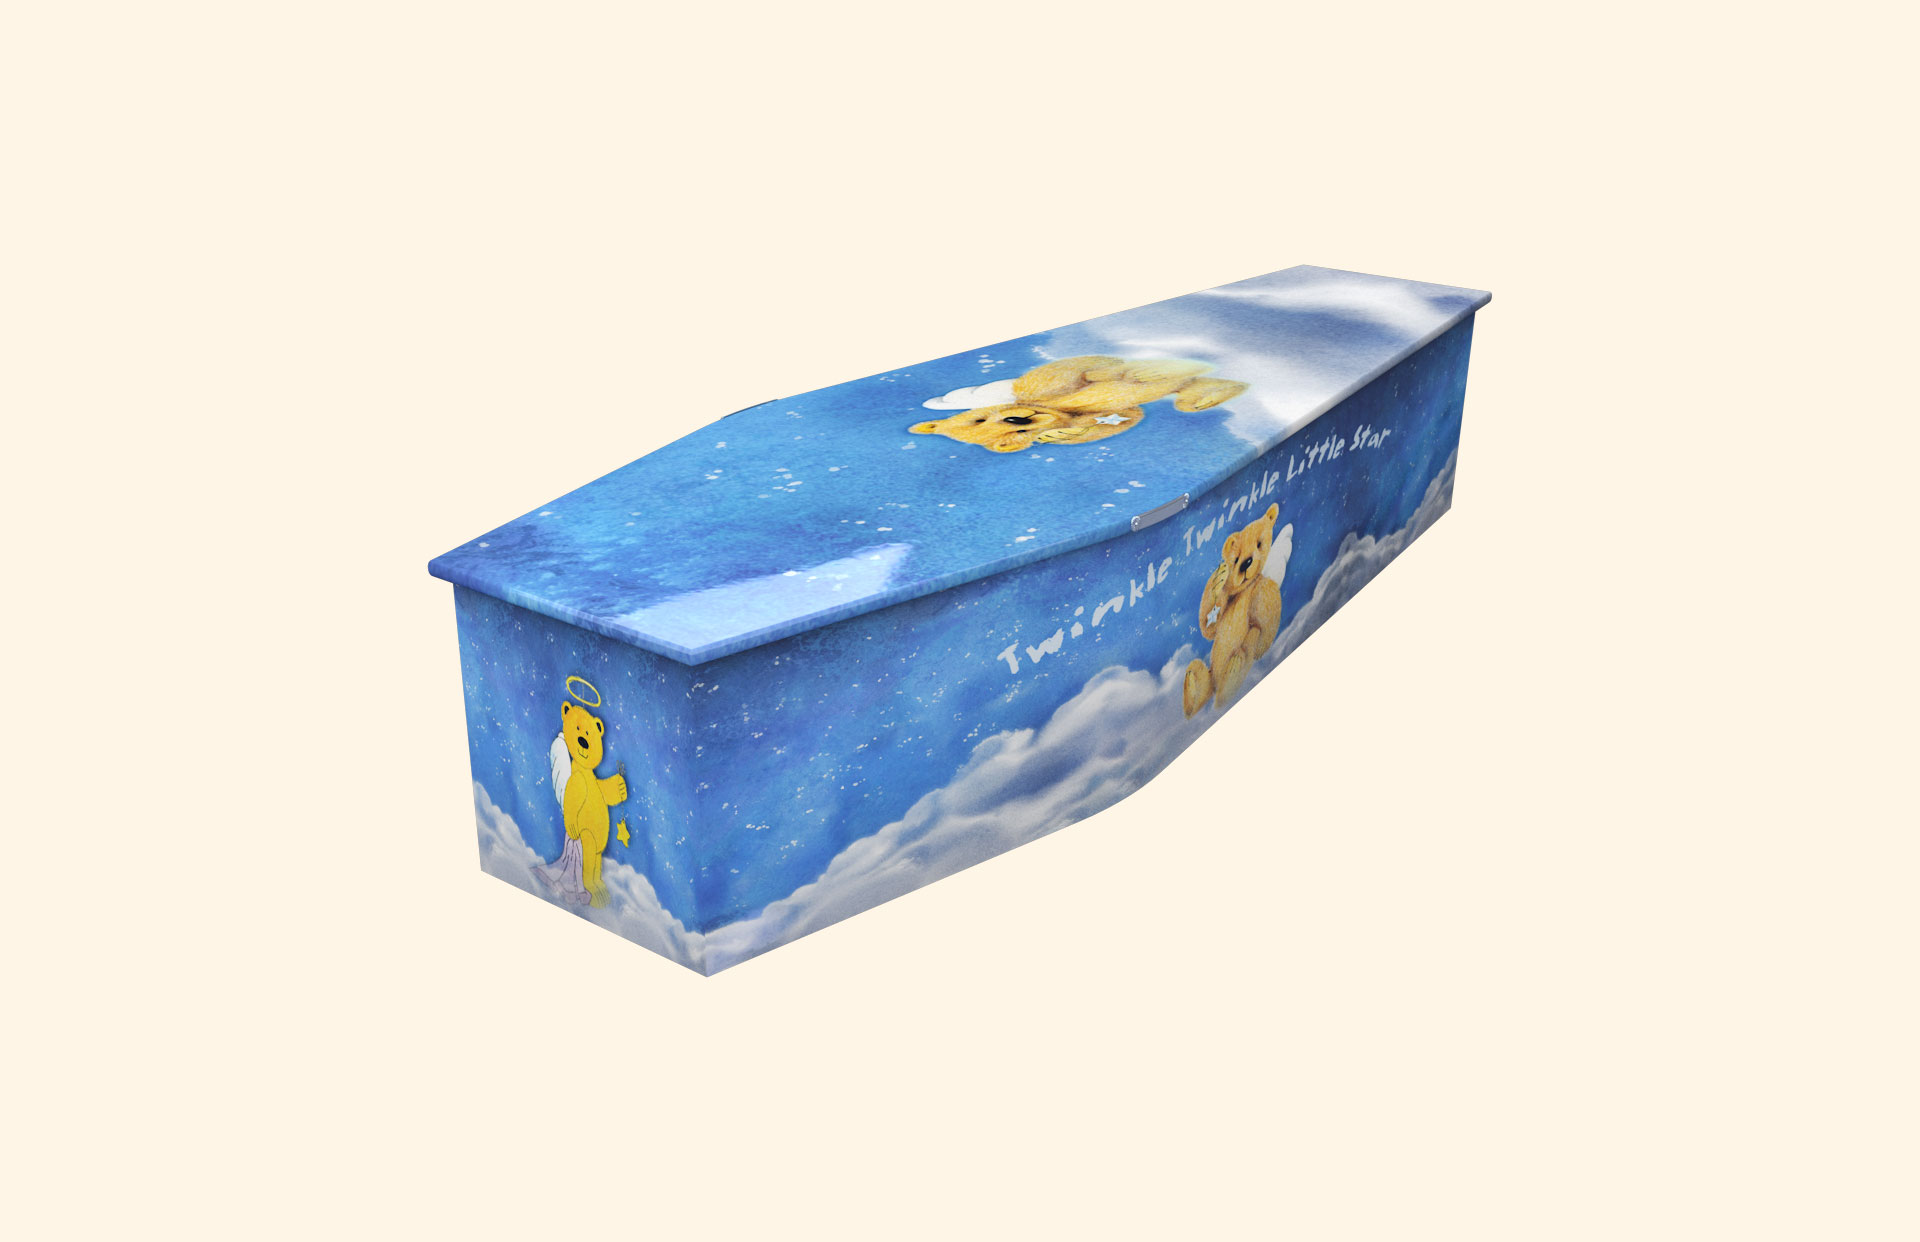 New Twinkle Twinkle Little Star Blue child coffin